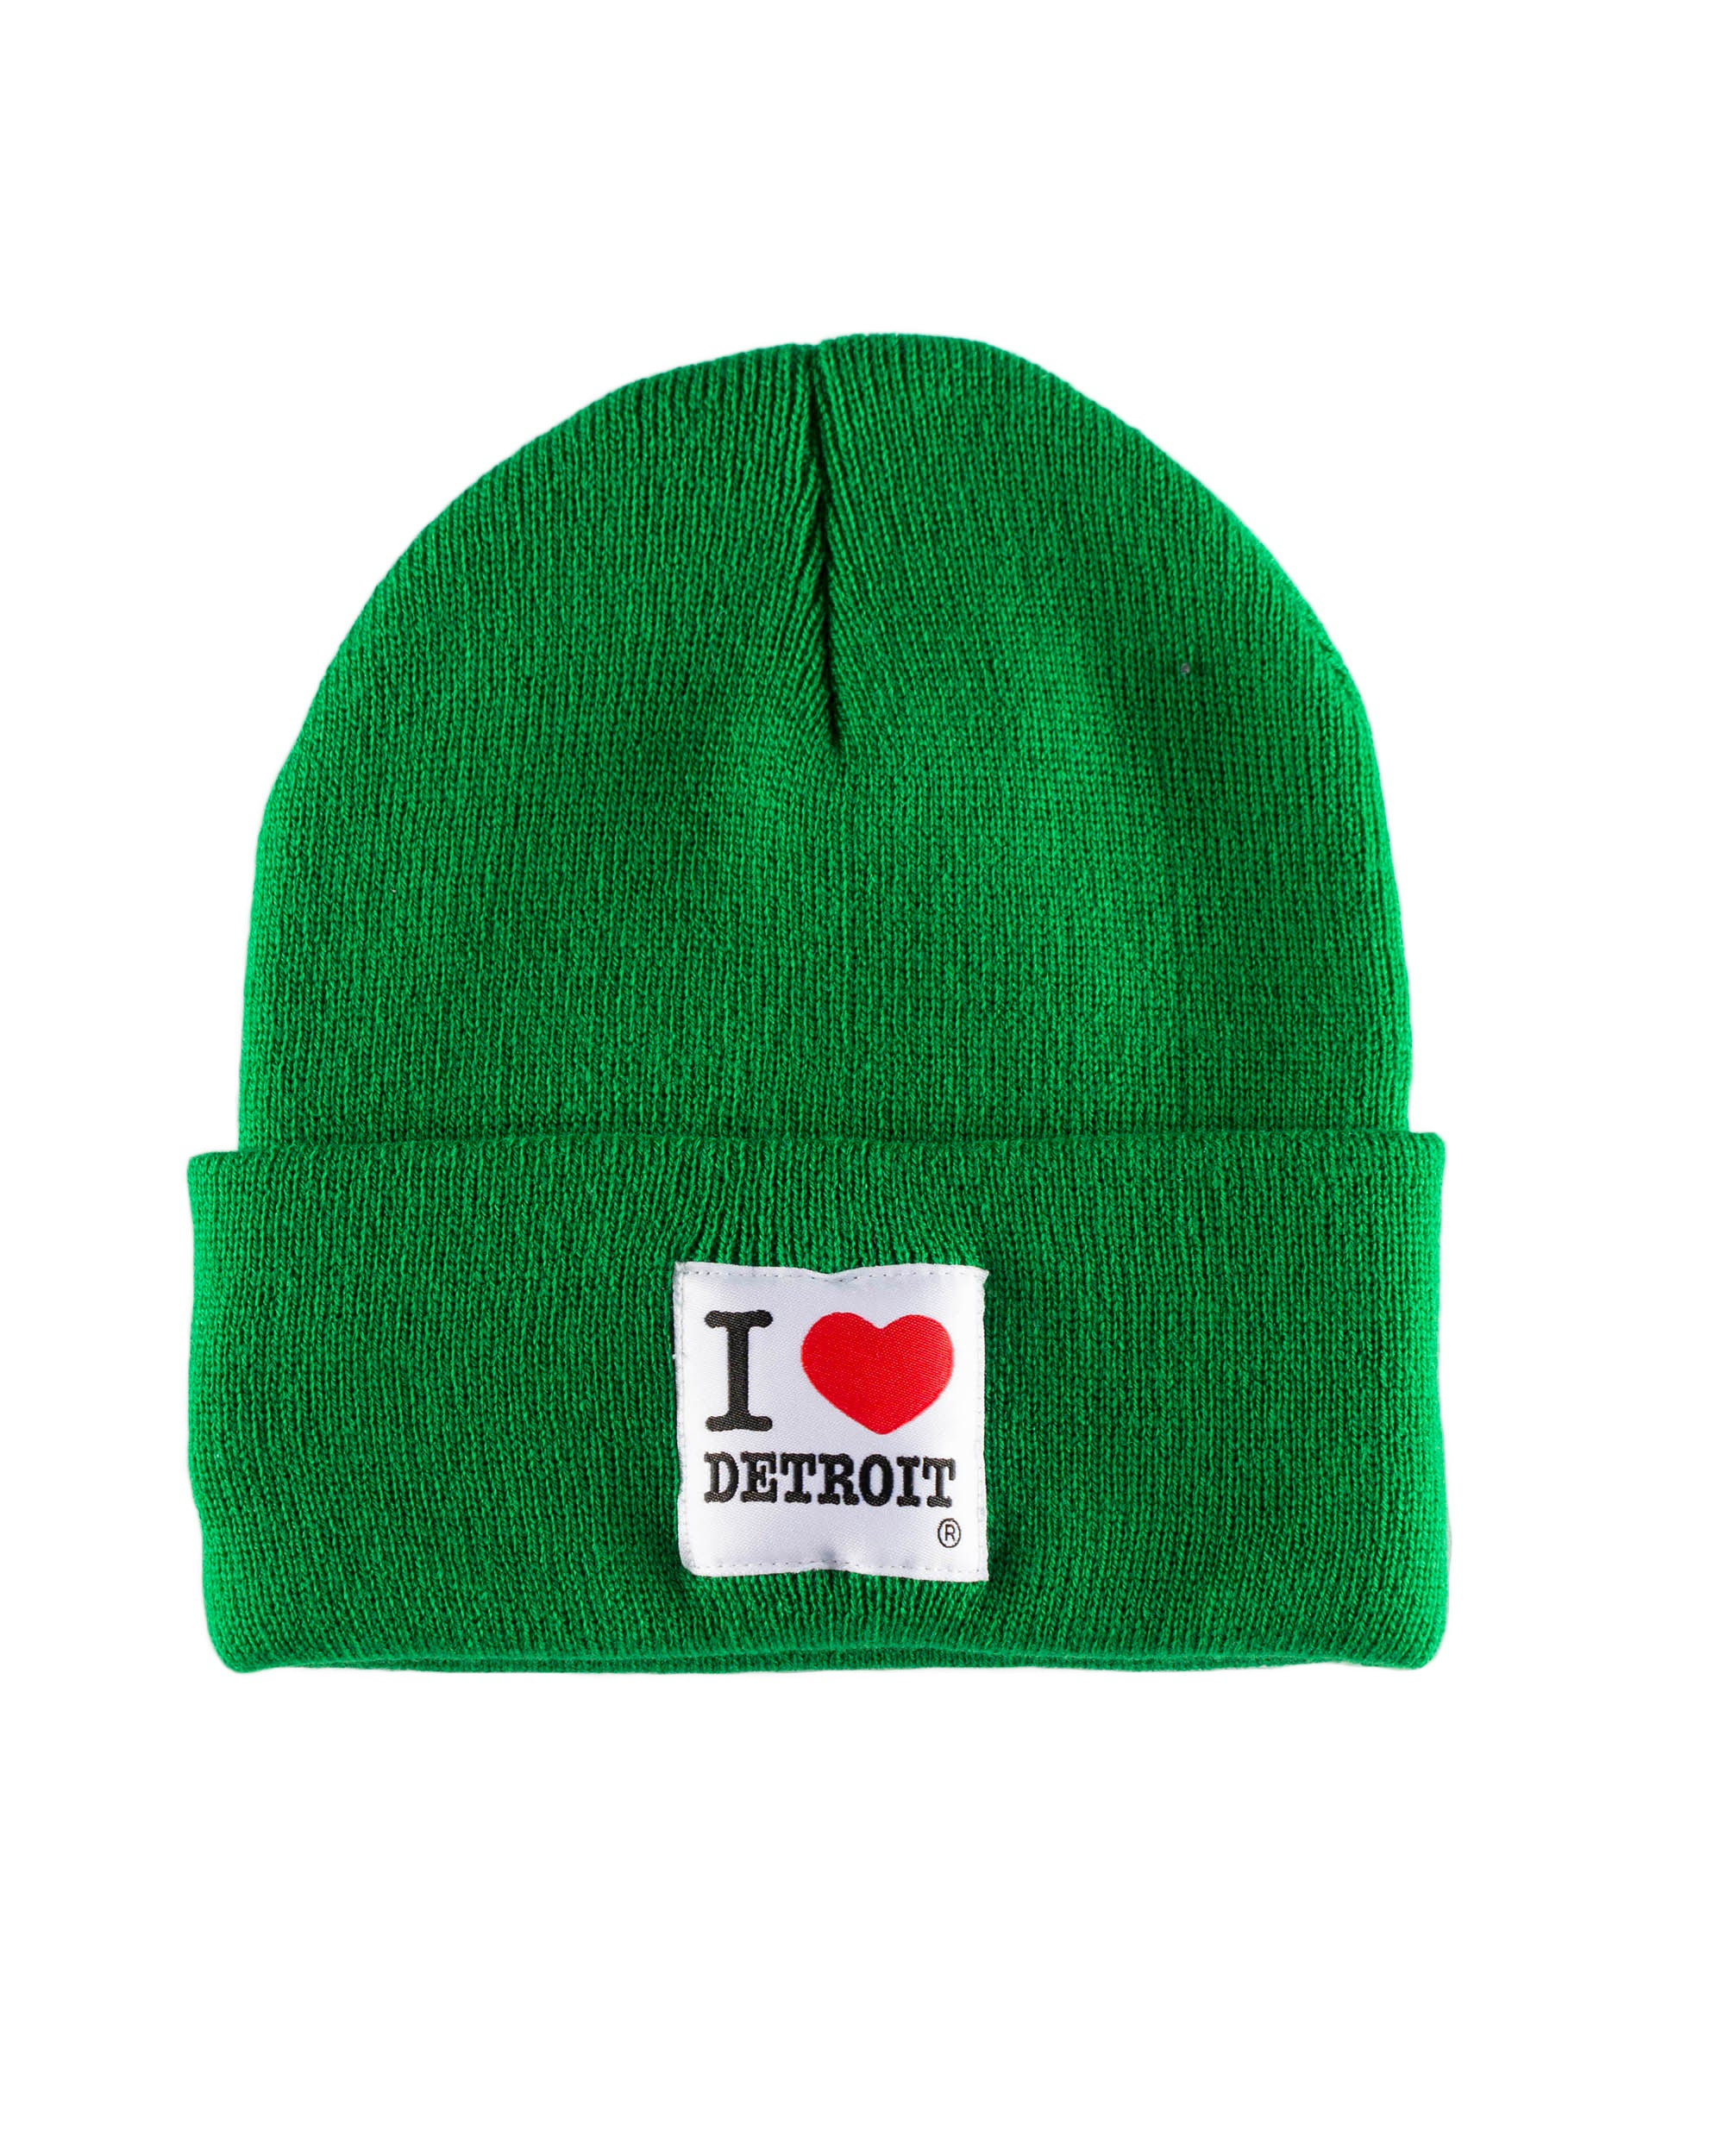 I Love Detroit - Green Knit Hat - The Great Lakes State